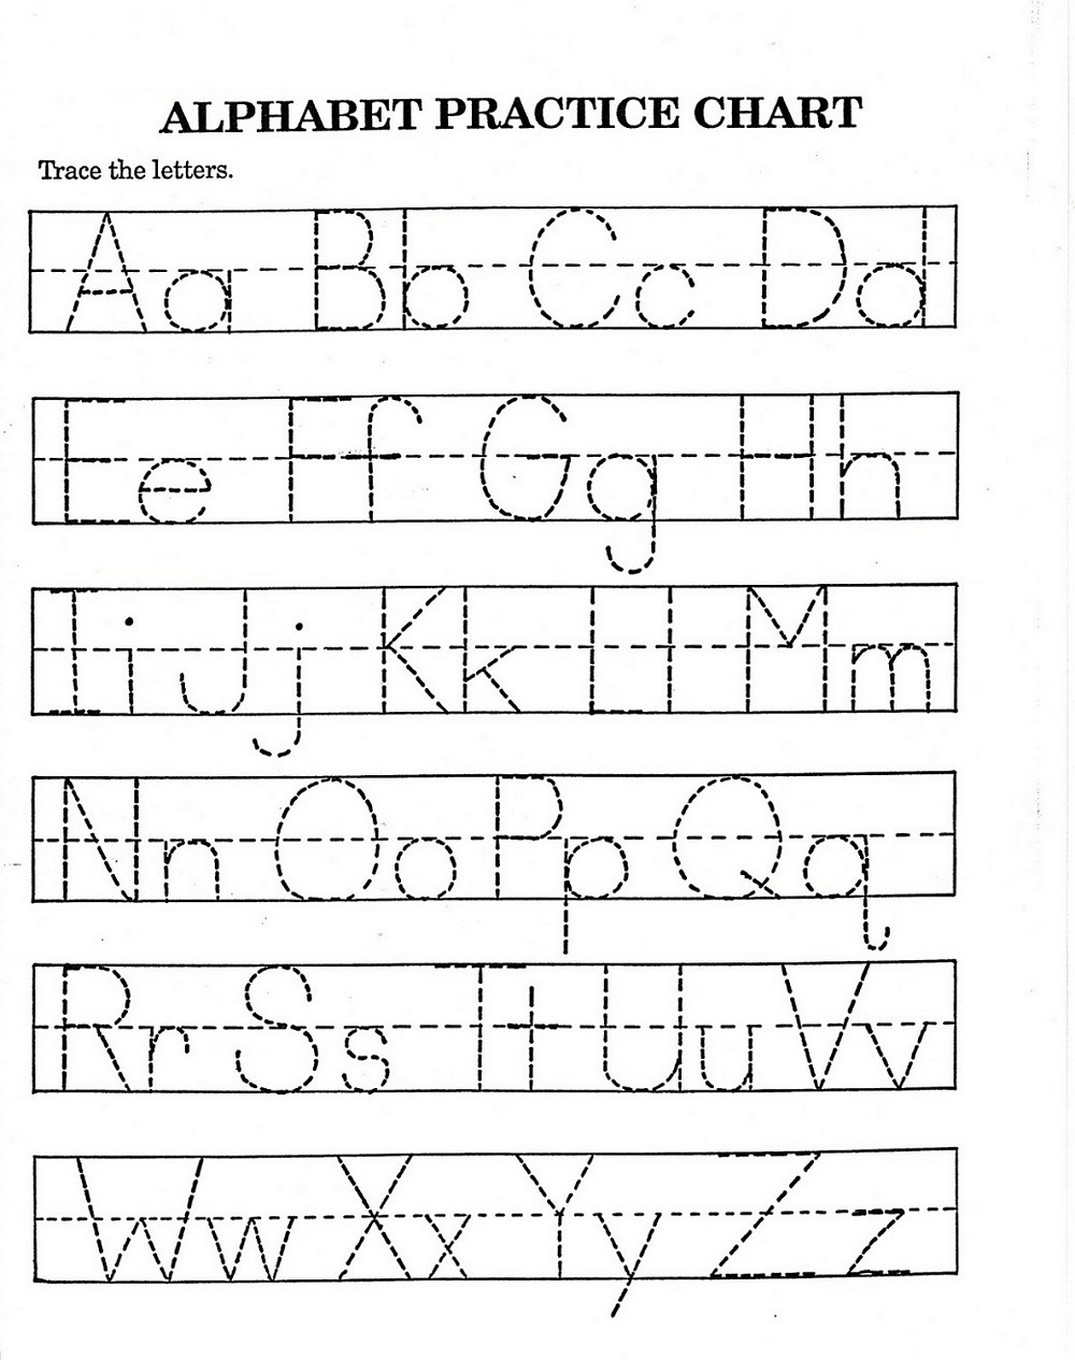 tracing letters a-z worksheets activity